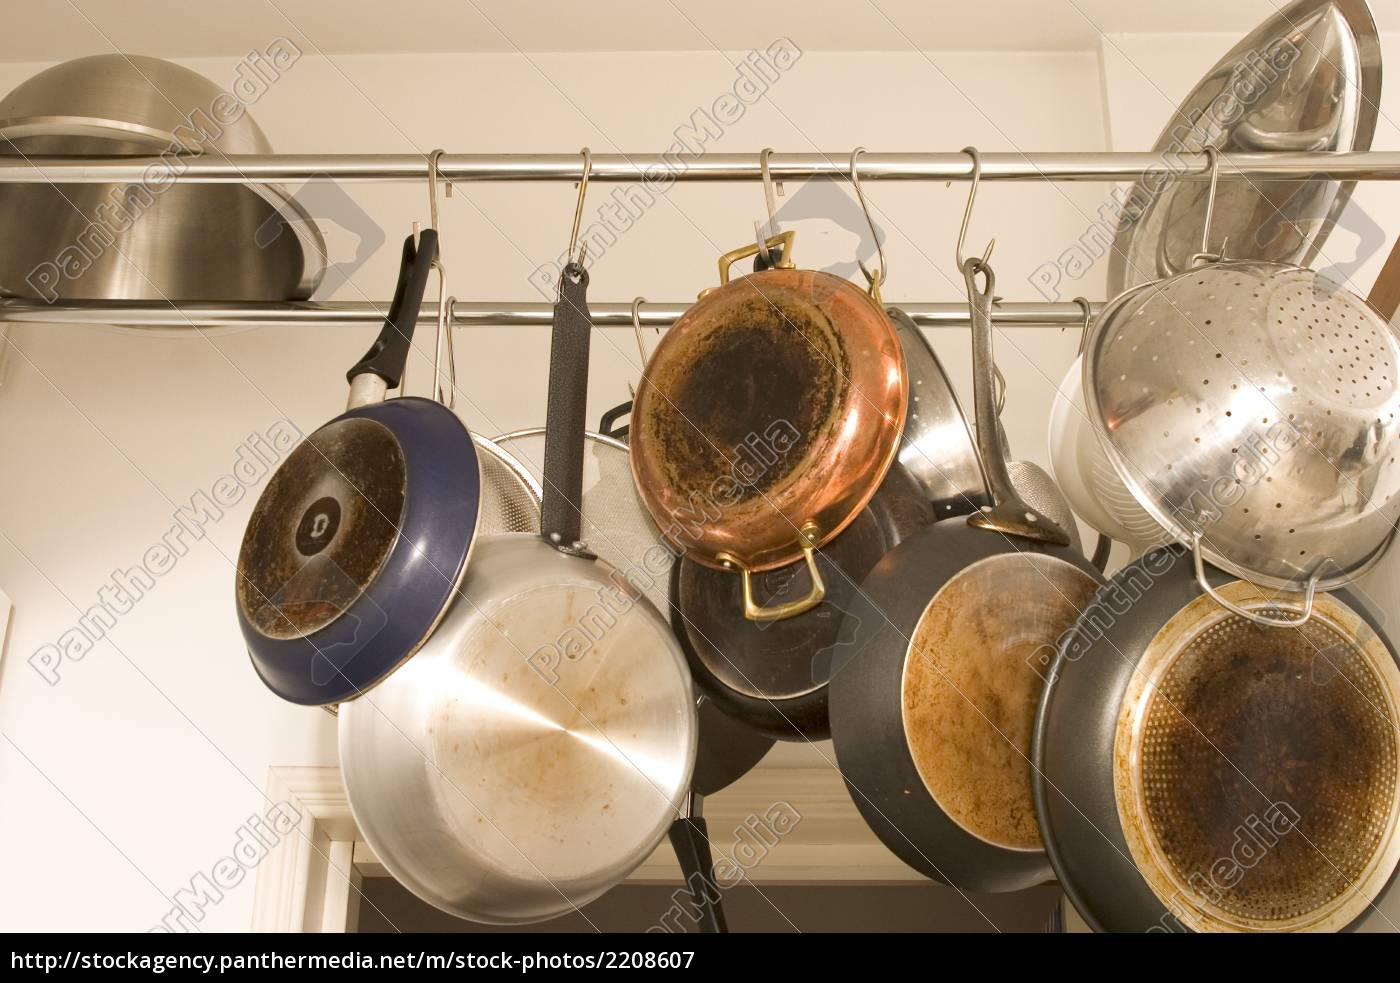 Household, Metal, Nobody, Photography, Close-Up, Hanging - 2208607